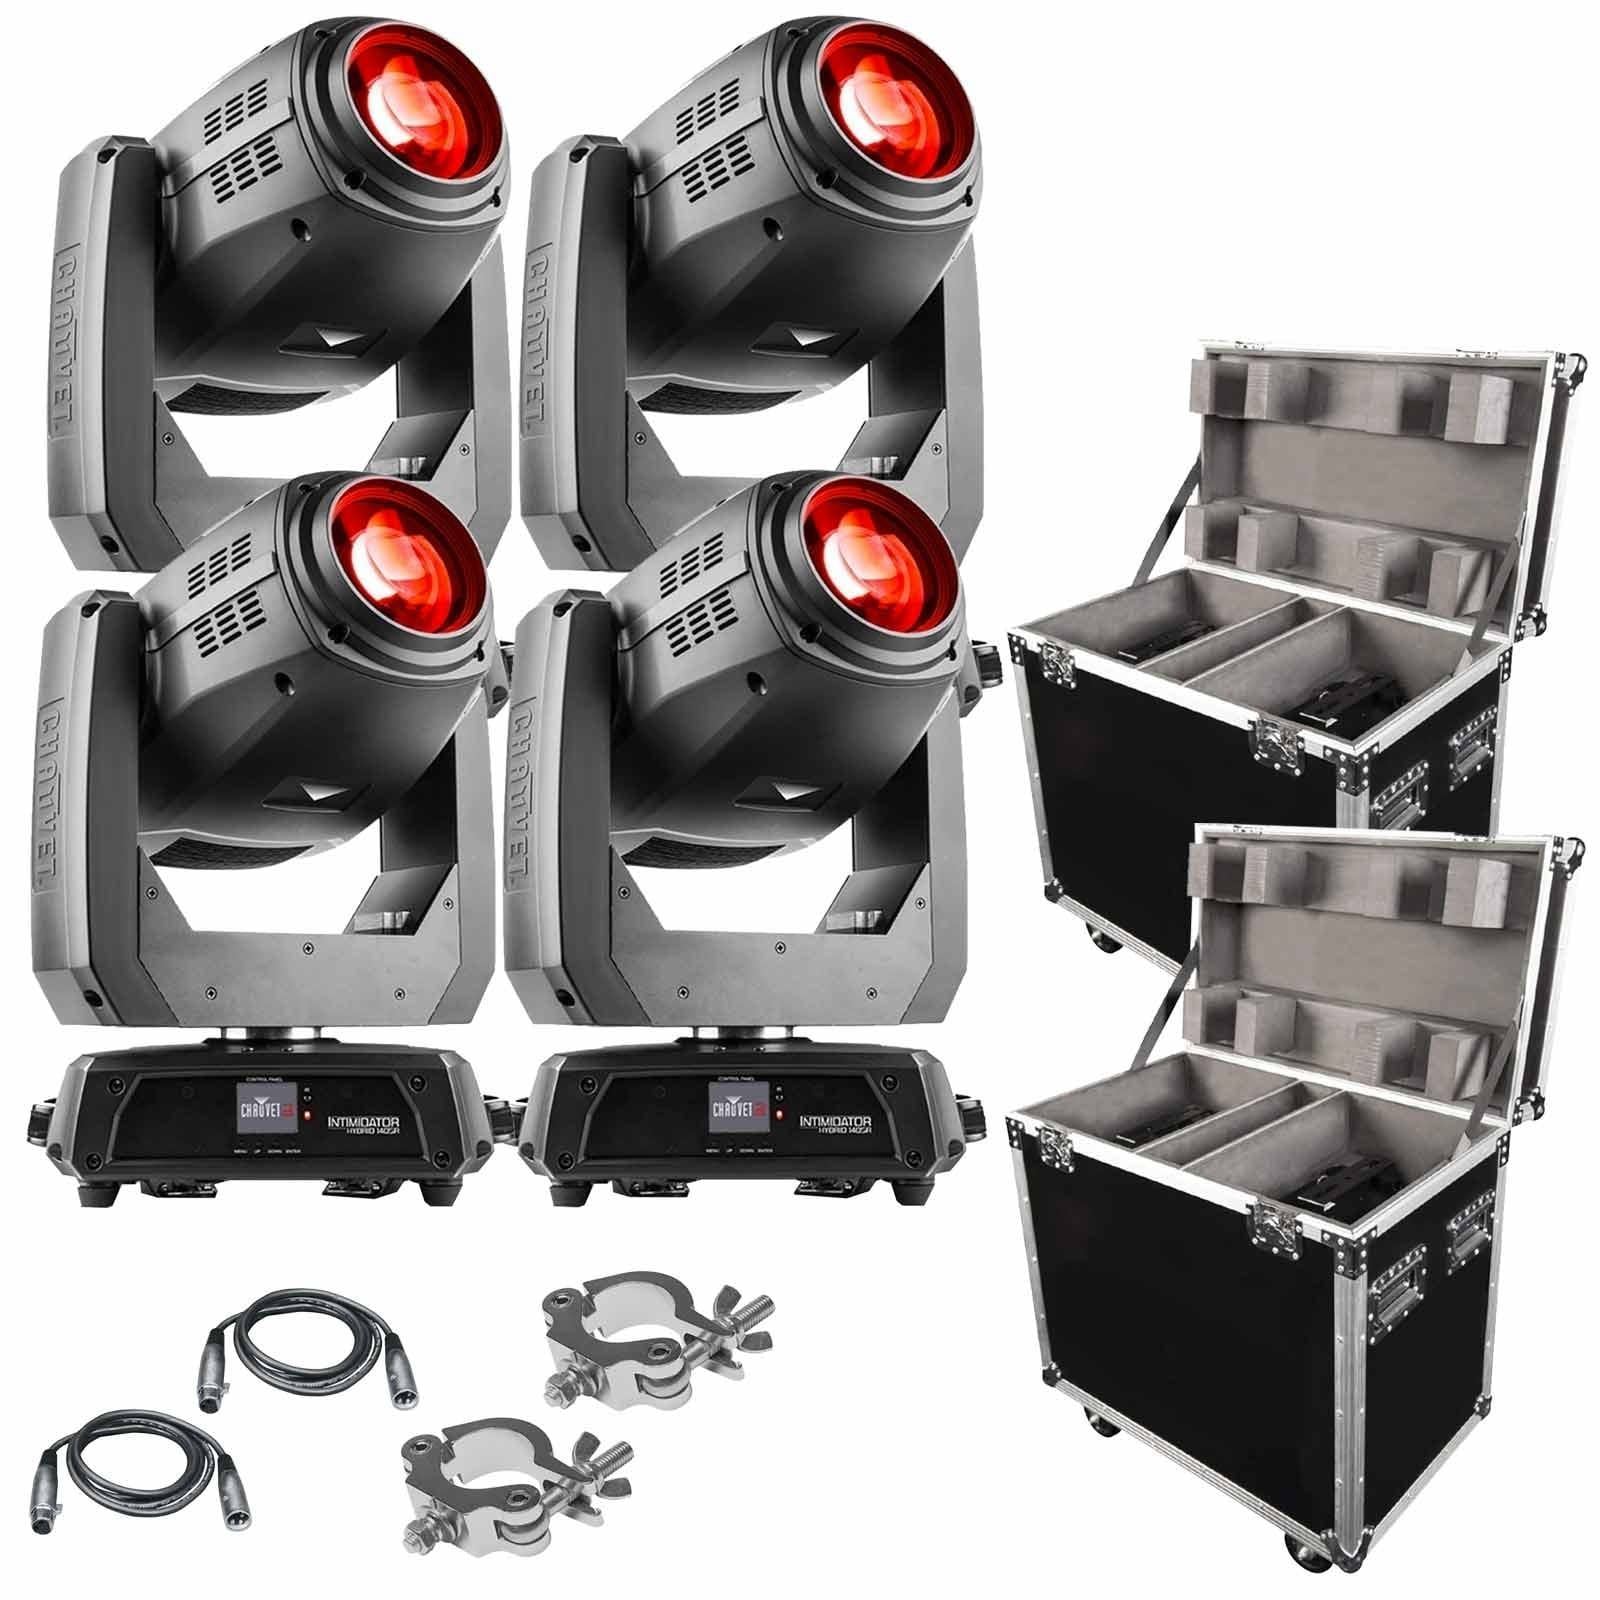 4-chauvet-dj-intimidator-hybrid-140sr-all-in-one-moving-heads-with-road-cases-package-baf.jpg